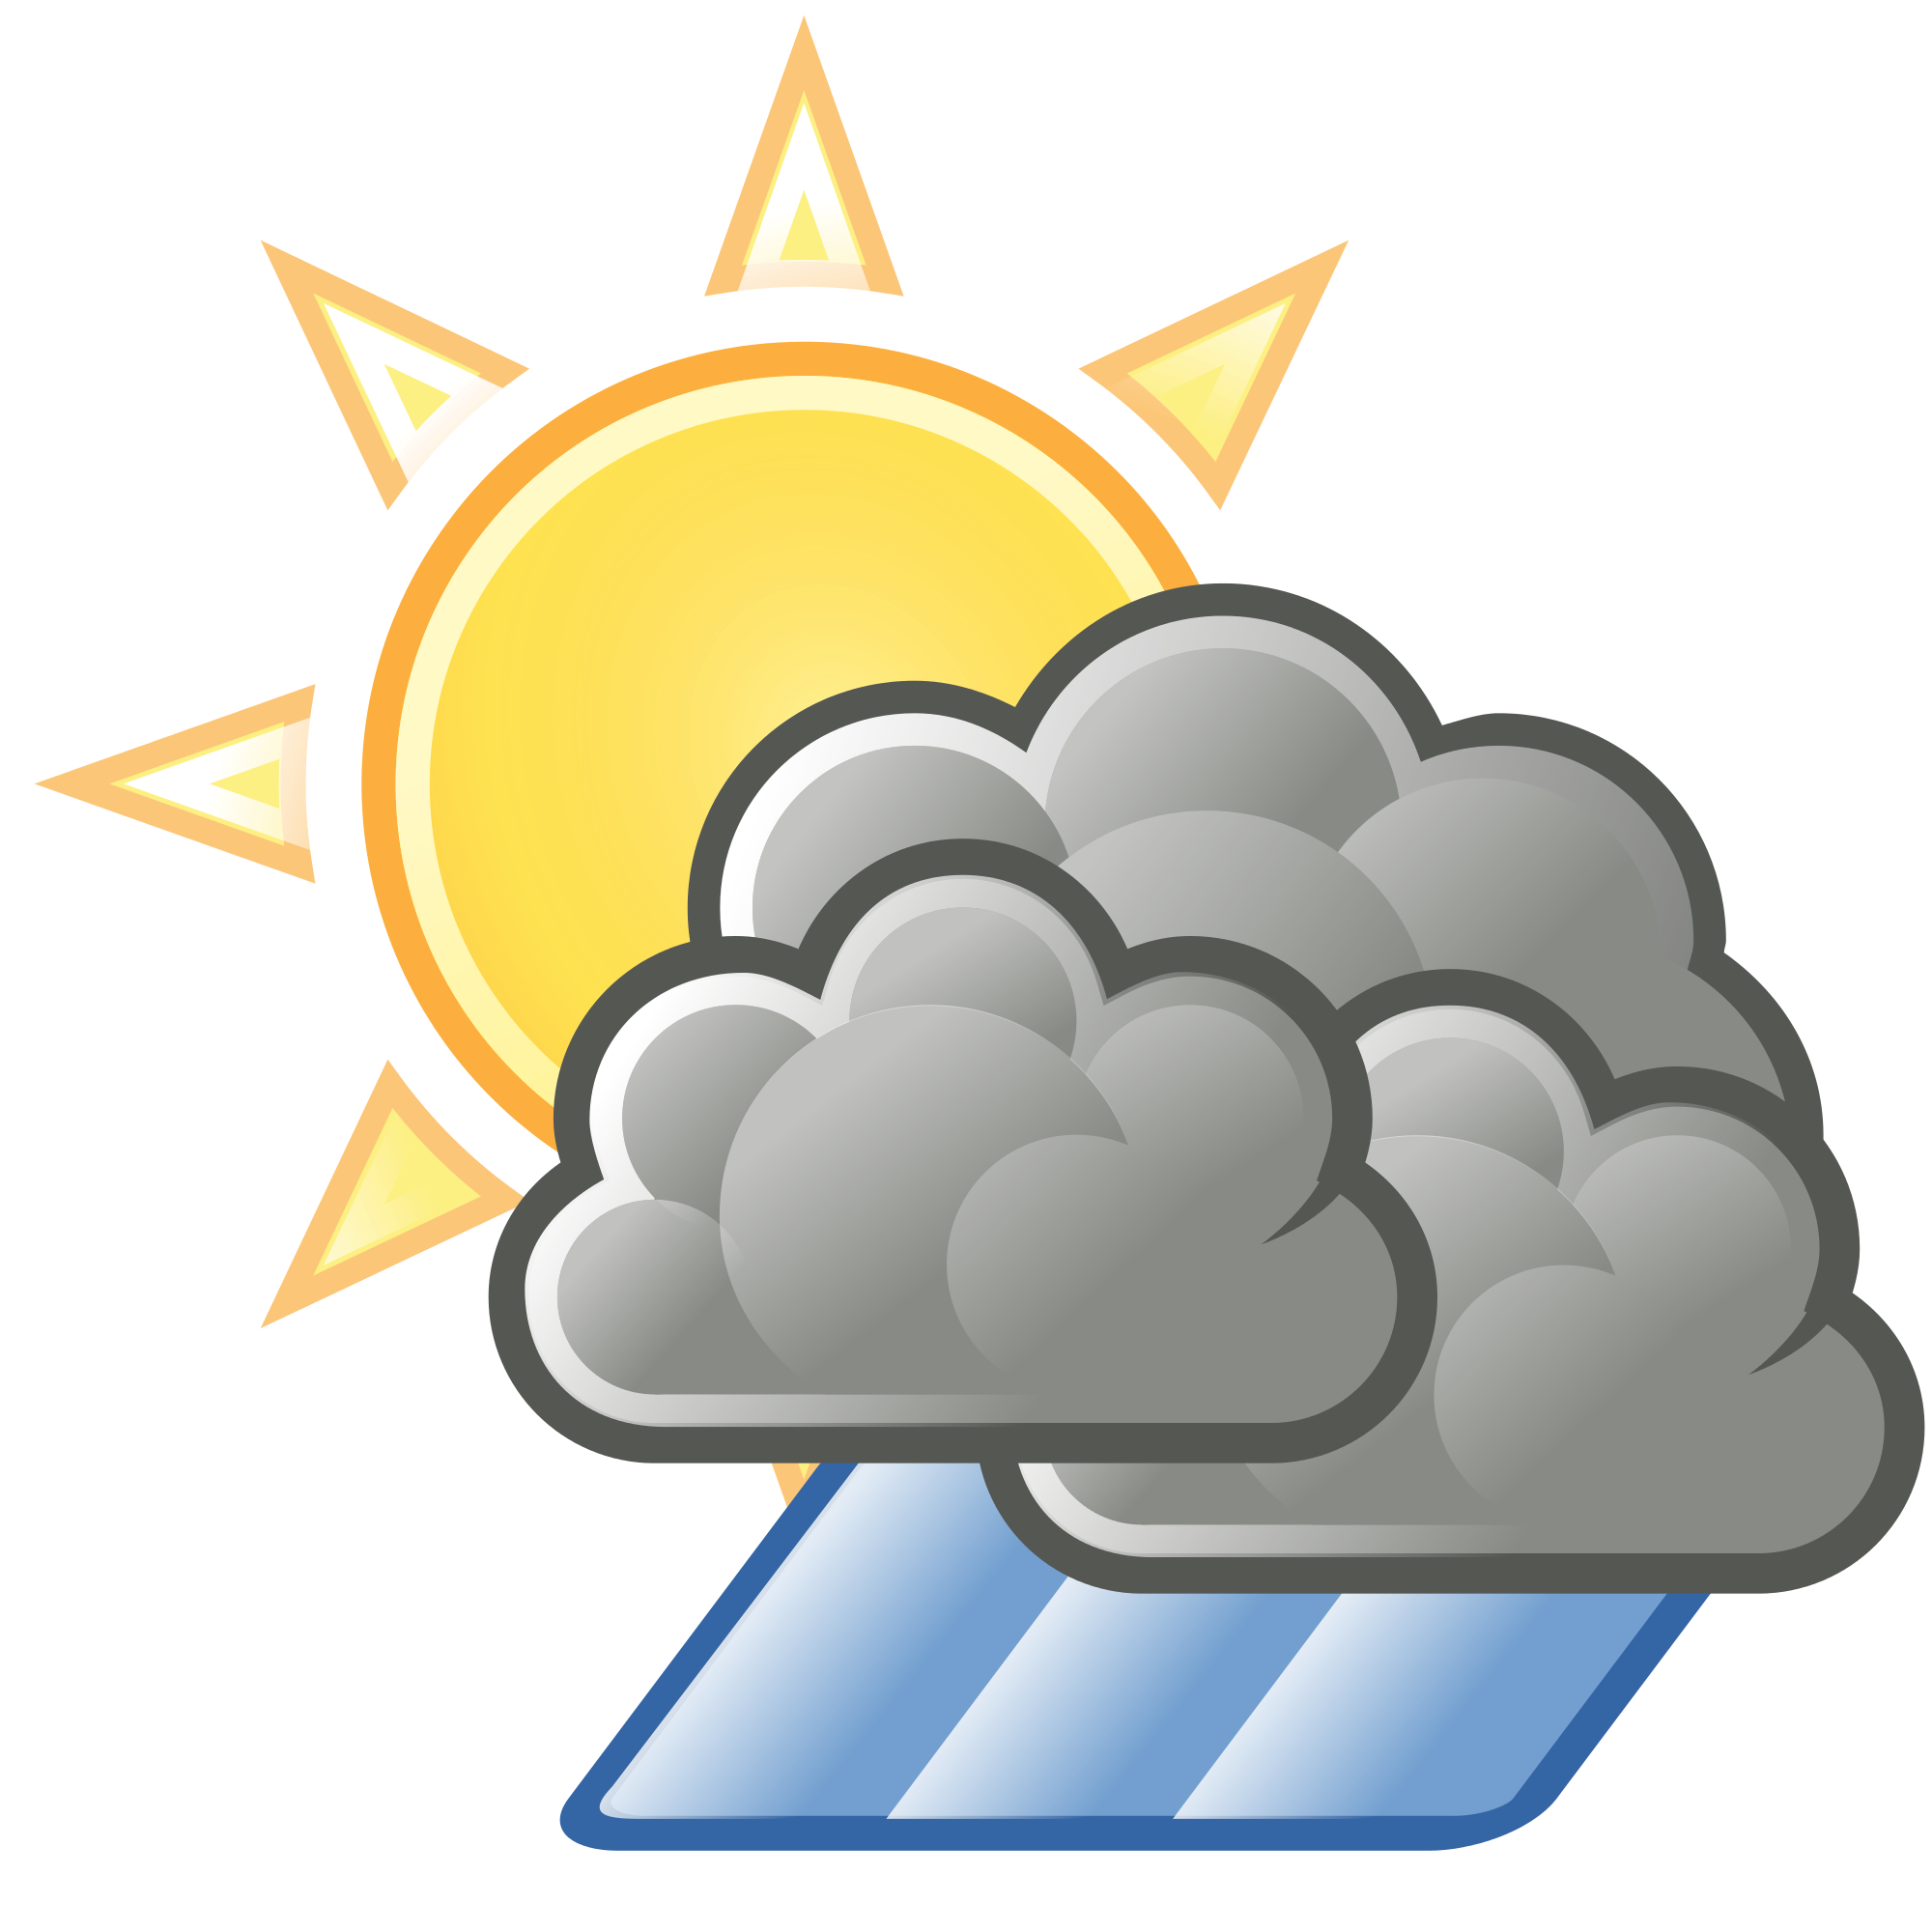 Showering clipart inclement weather. File sun clouds hard